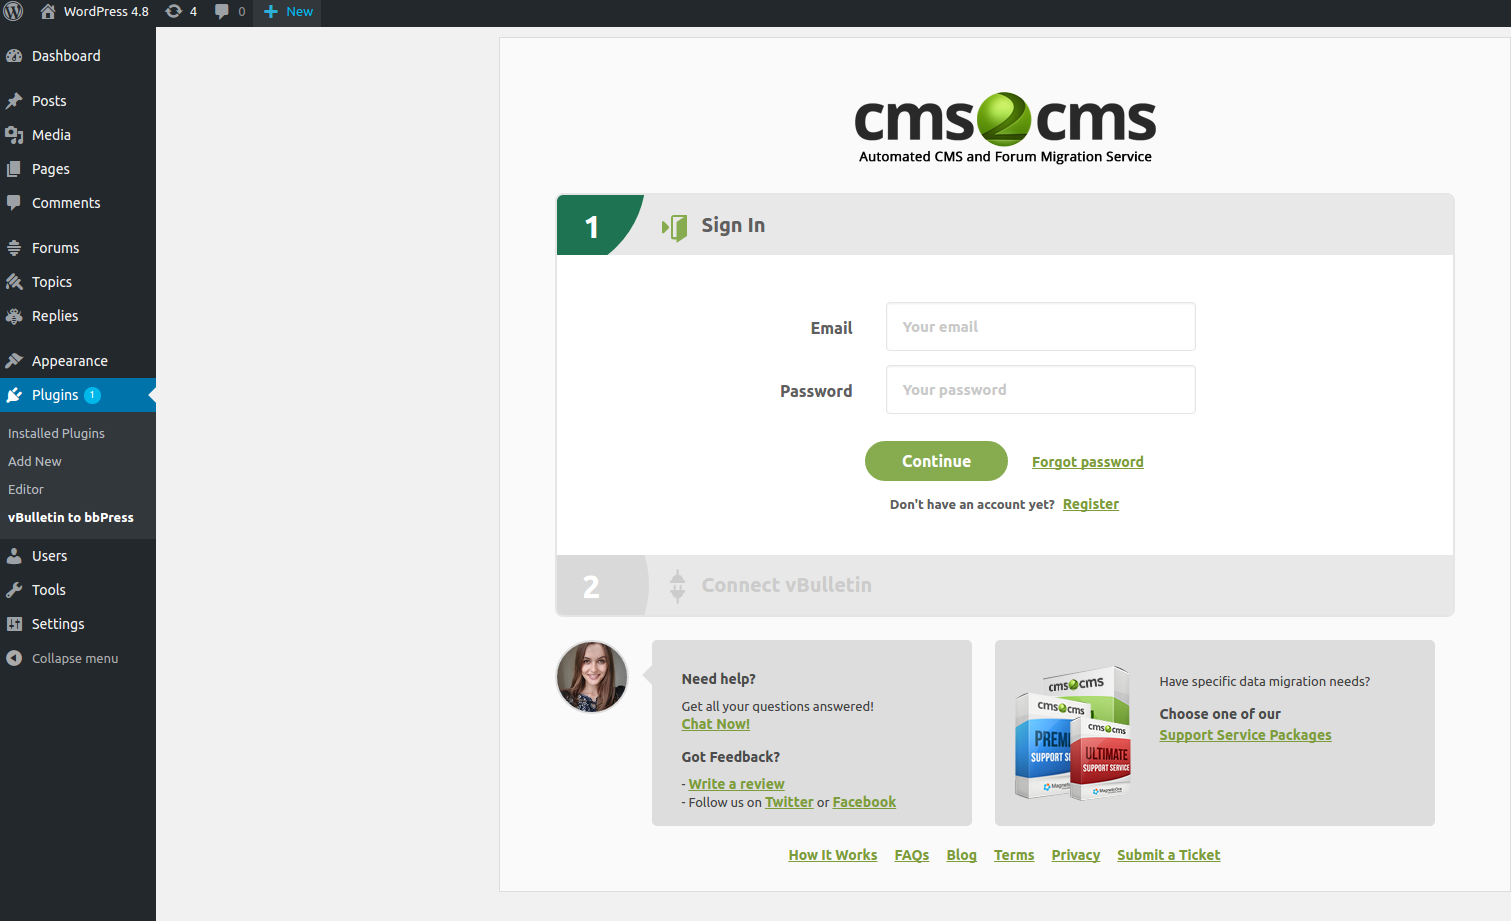 Register your CMS2CMS account. You just have to provide your username and password.